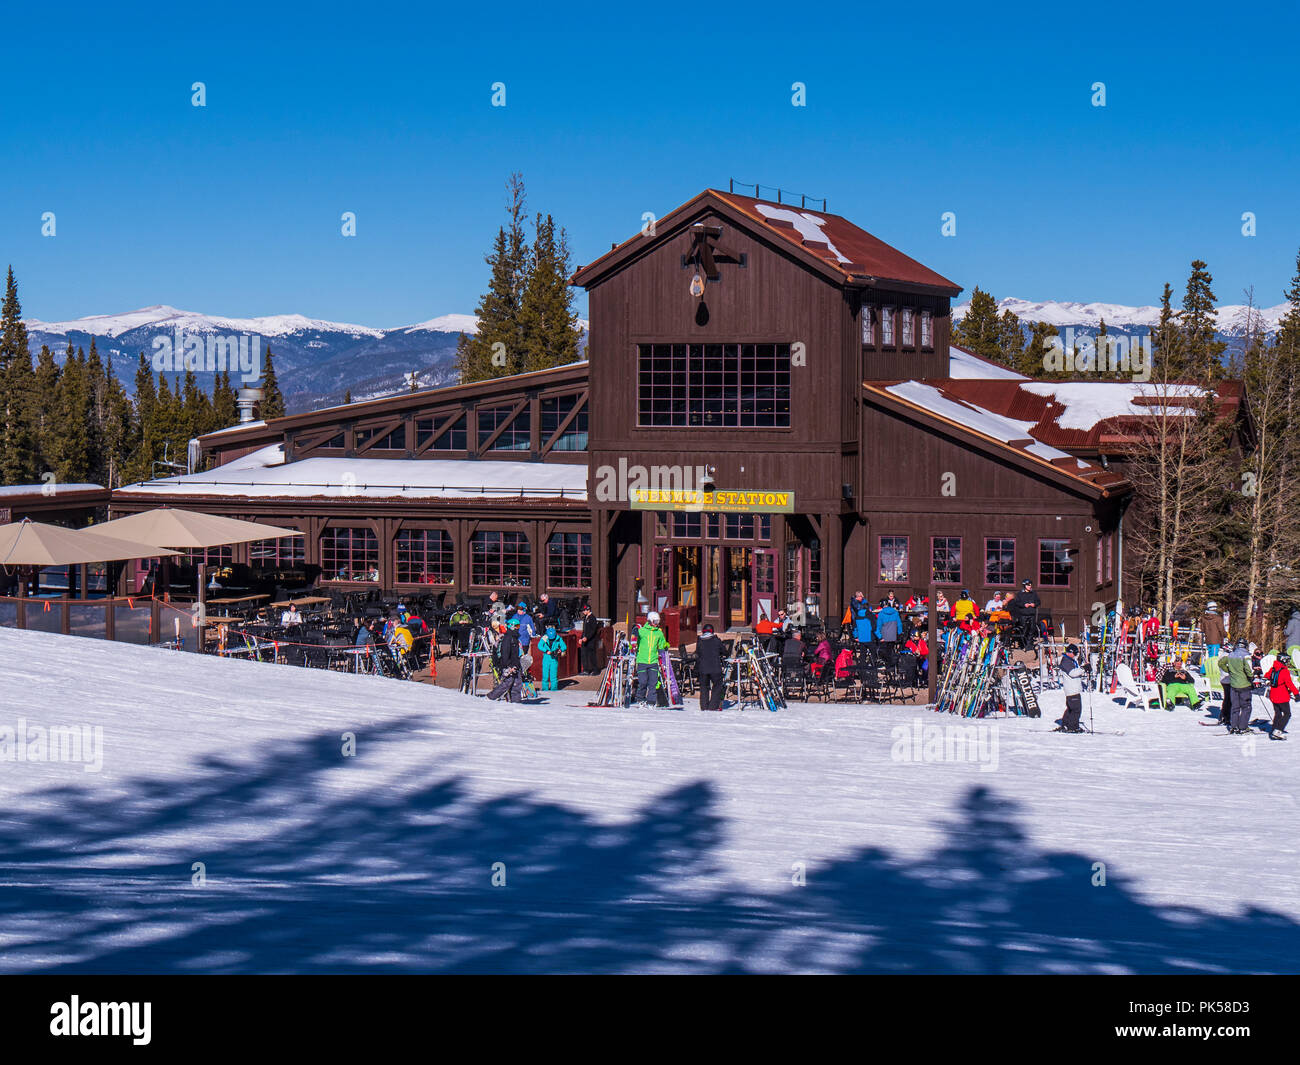 Tenmile Station Day Lodge And Restaurant At The Base Of Peak